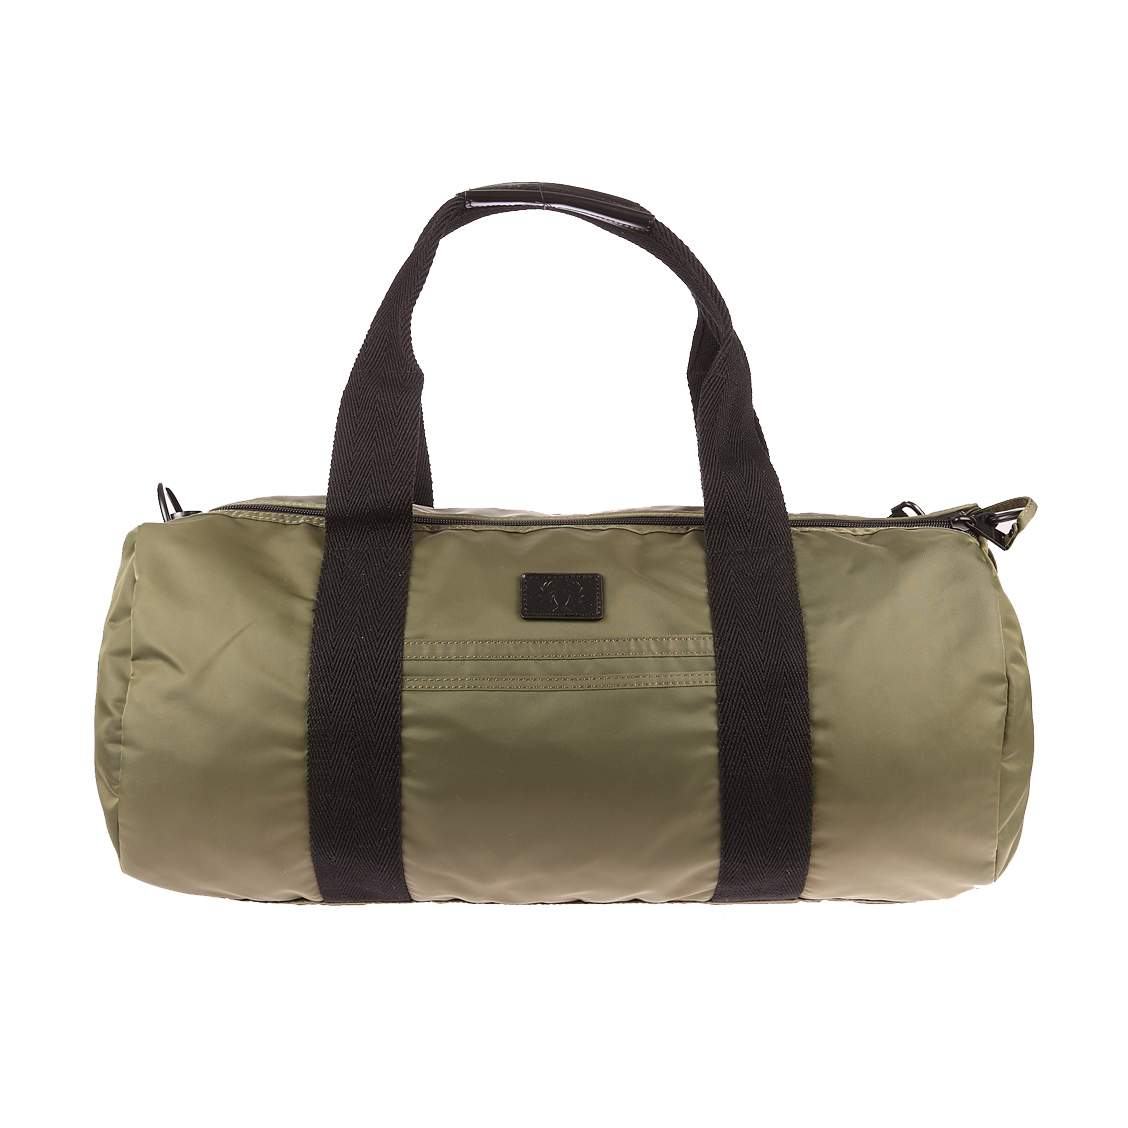 Sac de sport Fred Perry Sports Nylon Barrel Bag olive. Sac de sport Fred Perry  - Polyamide (100%) - Doublure : polyester (100%)- Olive